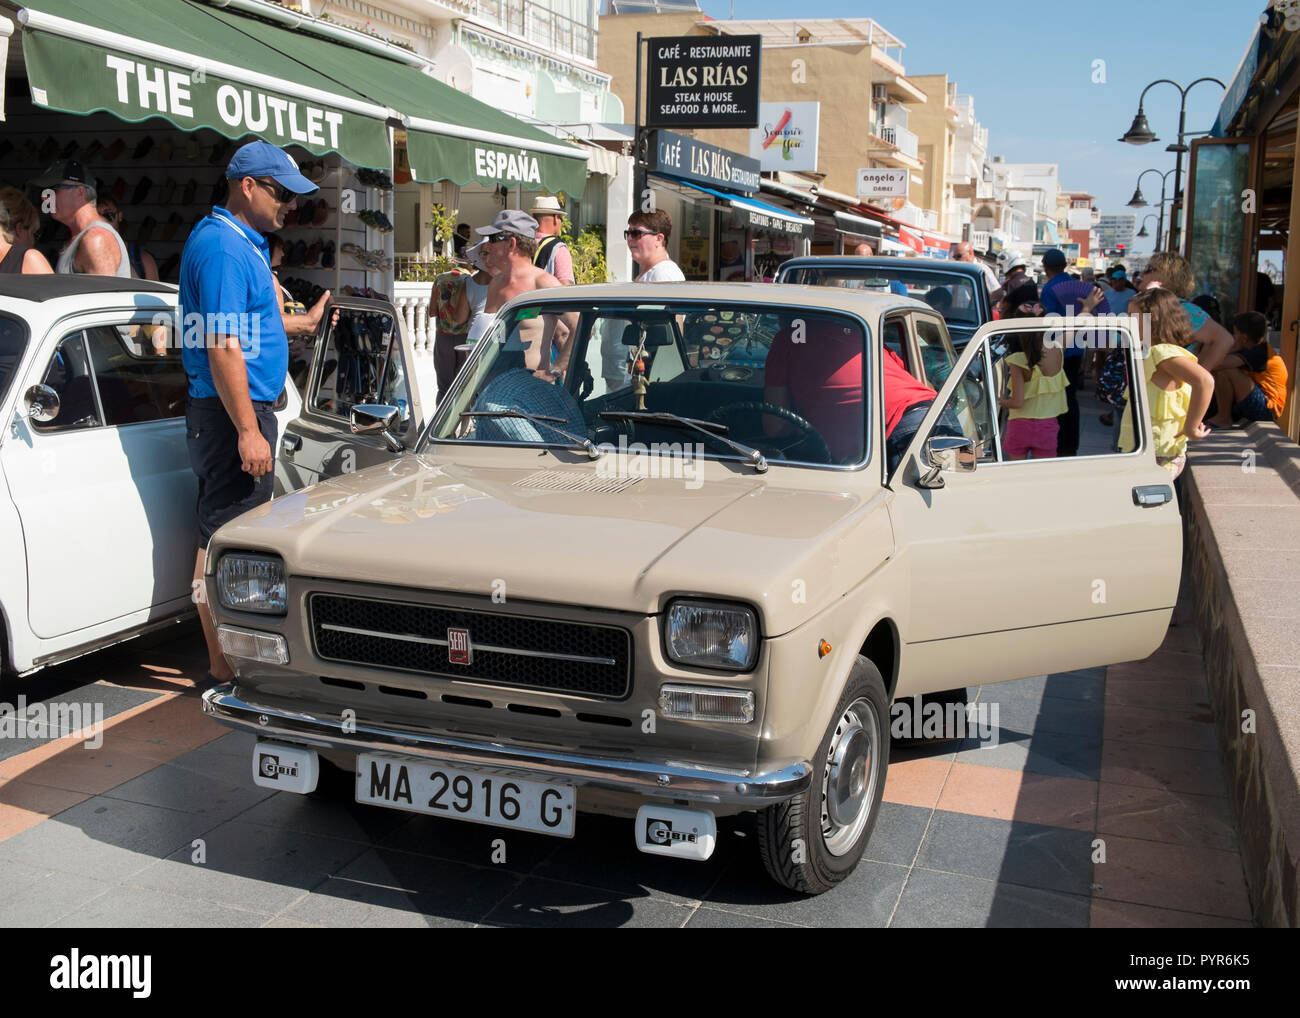 1976 Seat 127 903cc. Made in Spain under Fiat license. - Stock Image